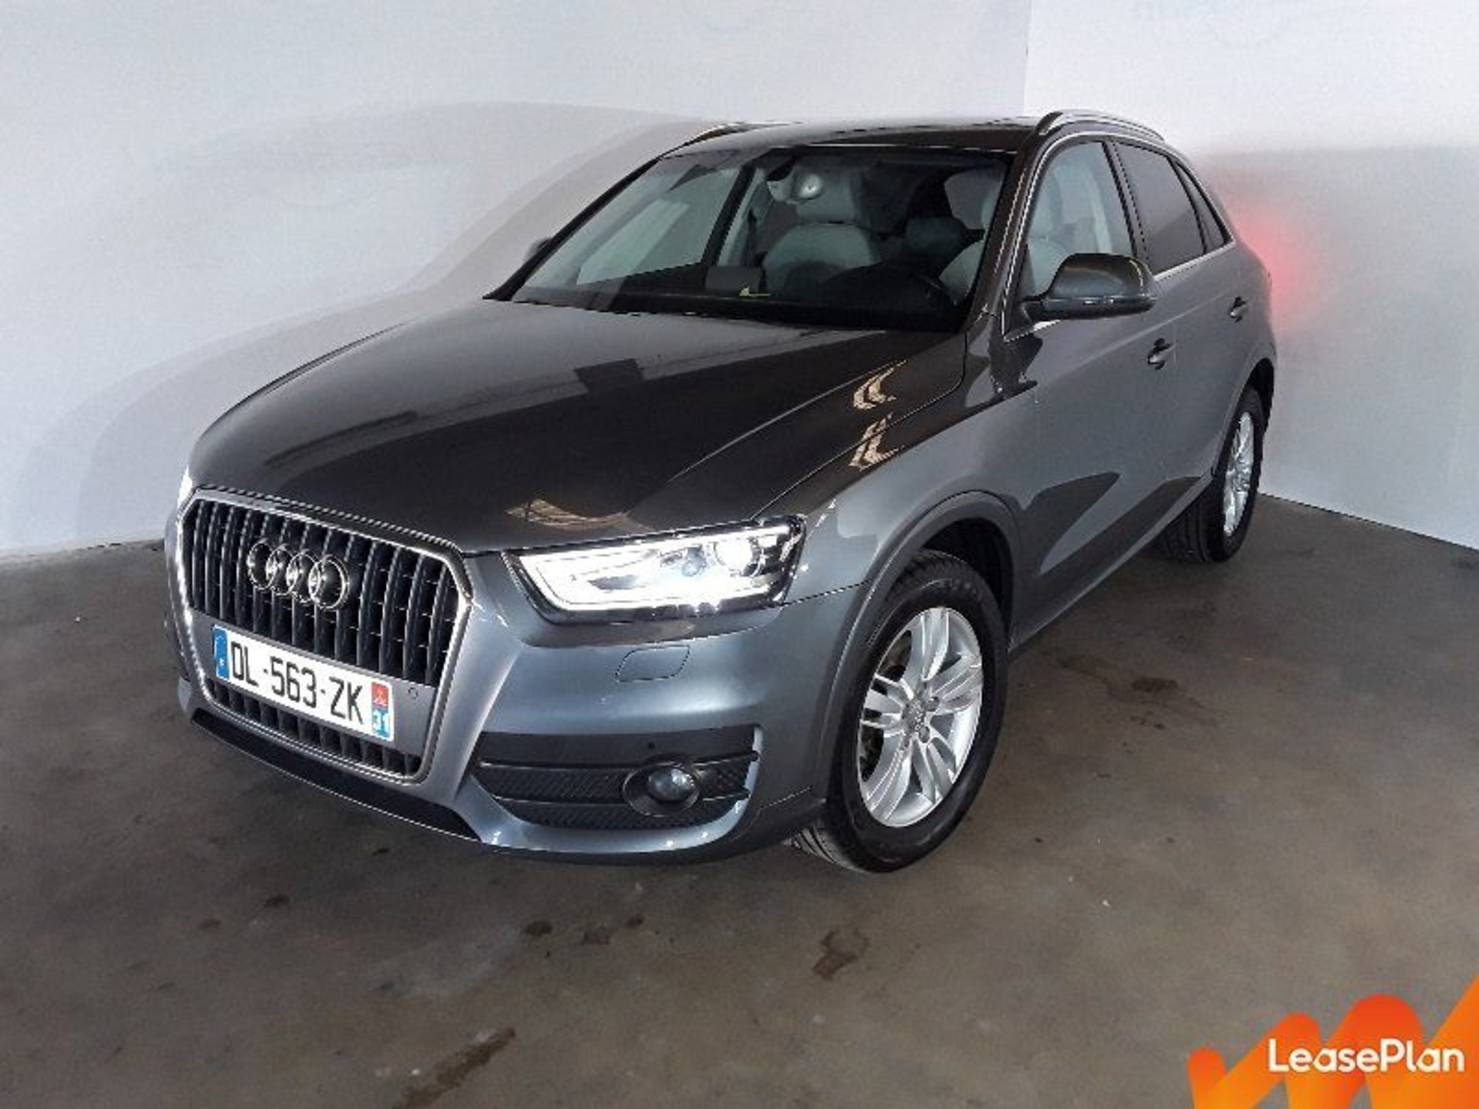 Audi Q3 2.0 TDI 140 ch, Ambition Luxe detail1